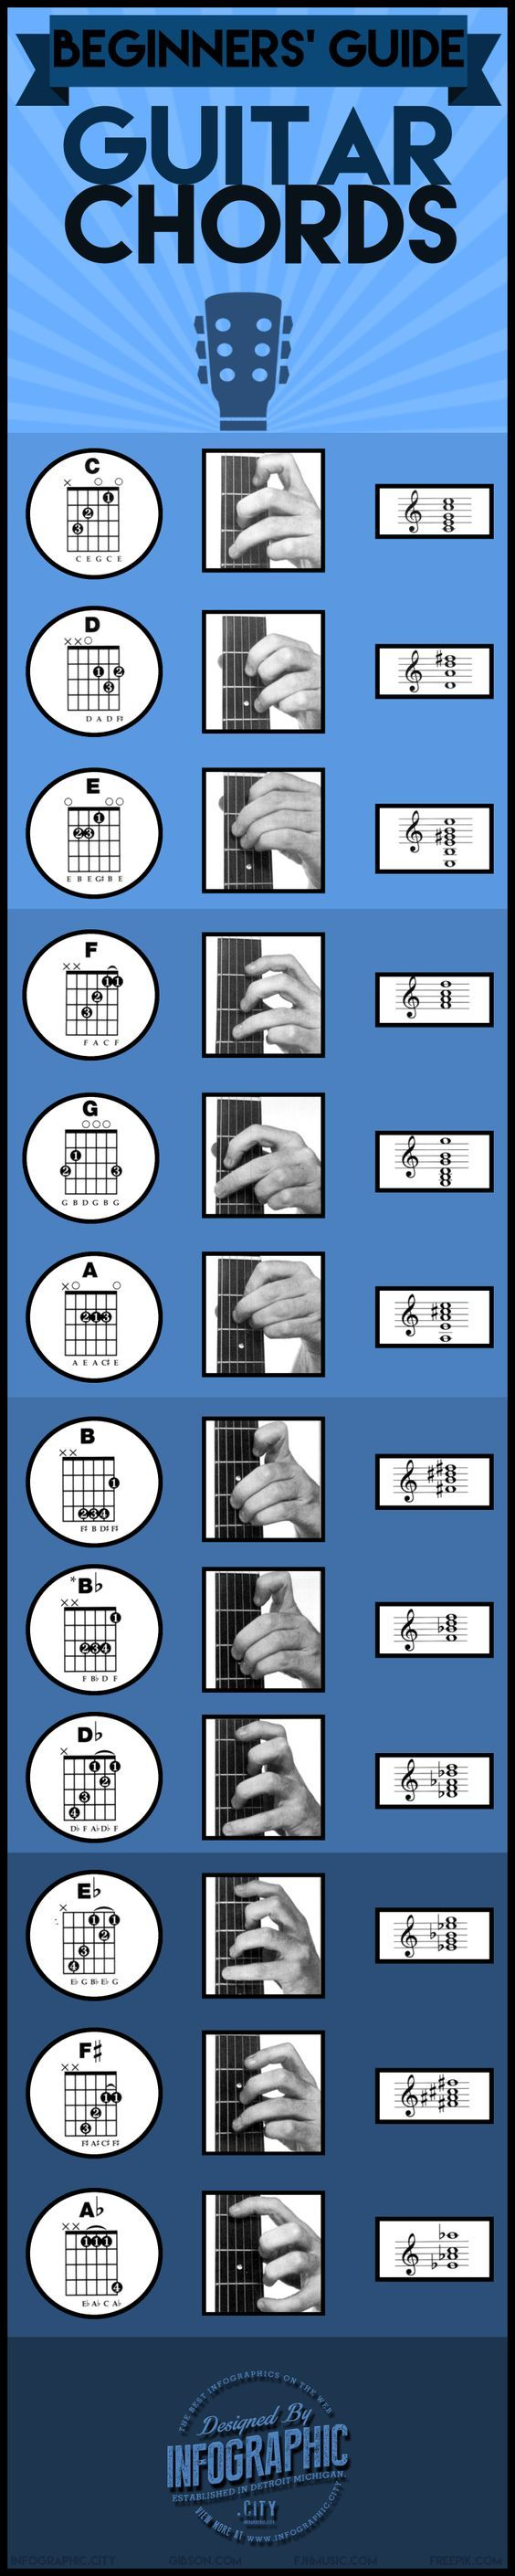 157 best chords images on pinterest songs sheet music and a beginners guide to guitar chords infographic hexwebz Choice Image